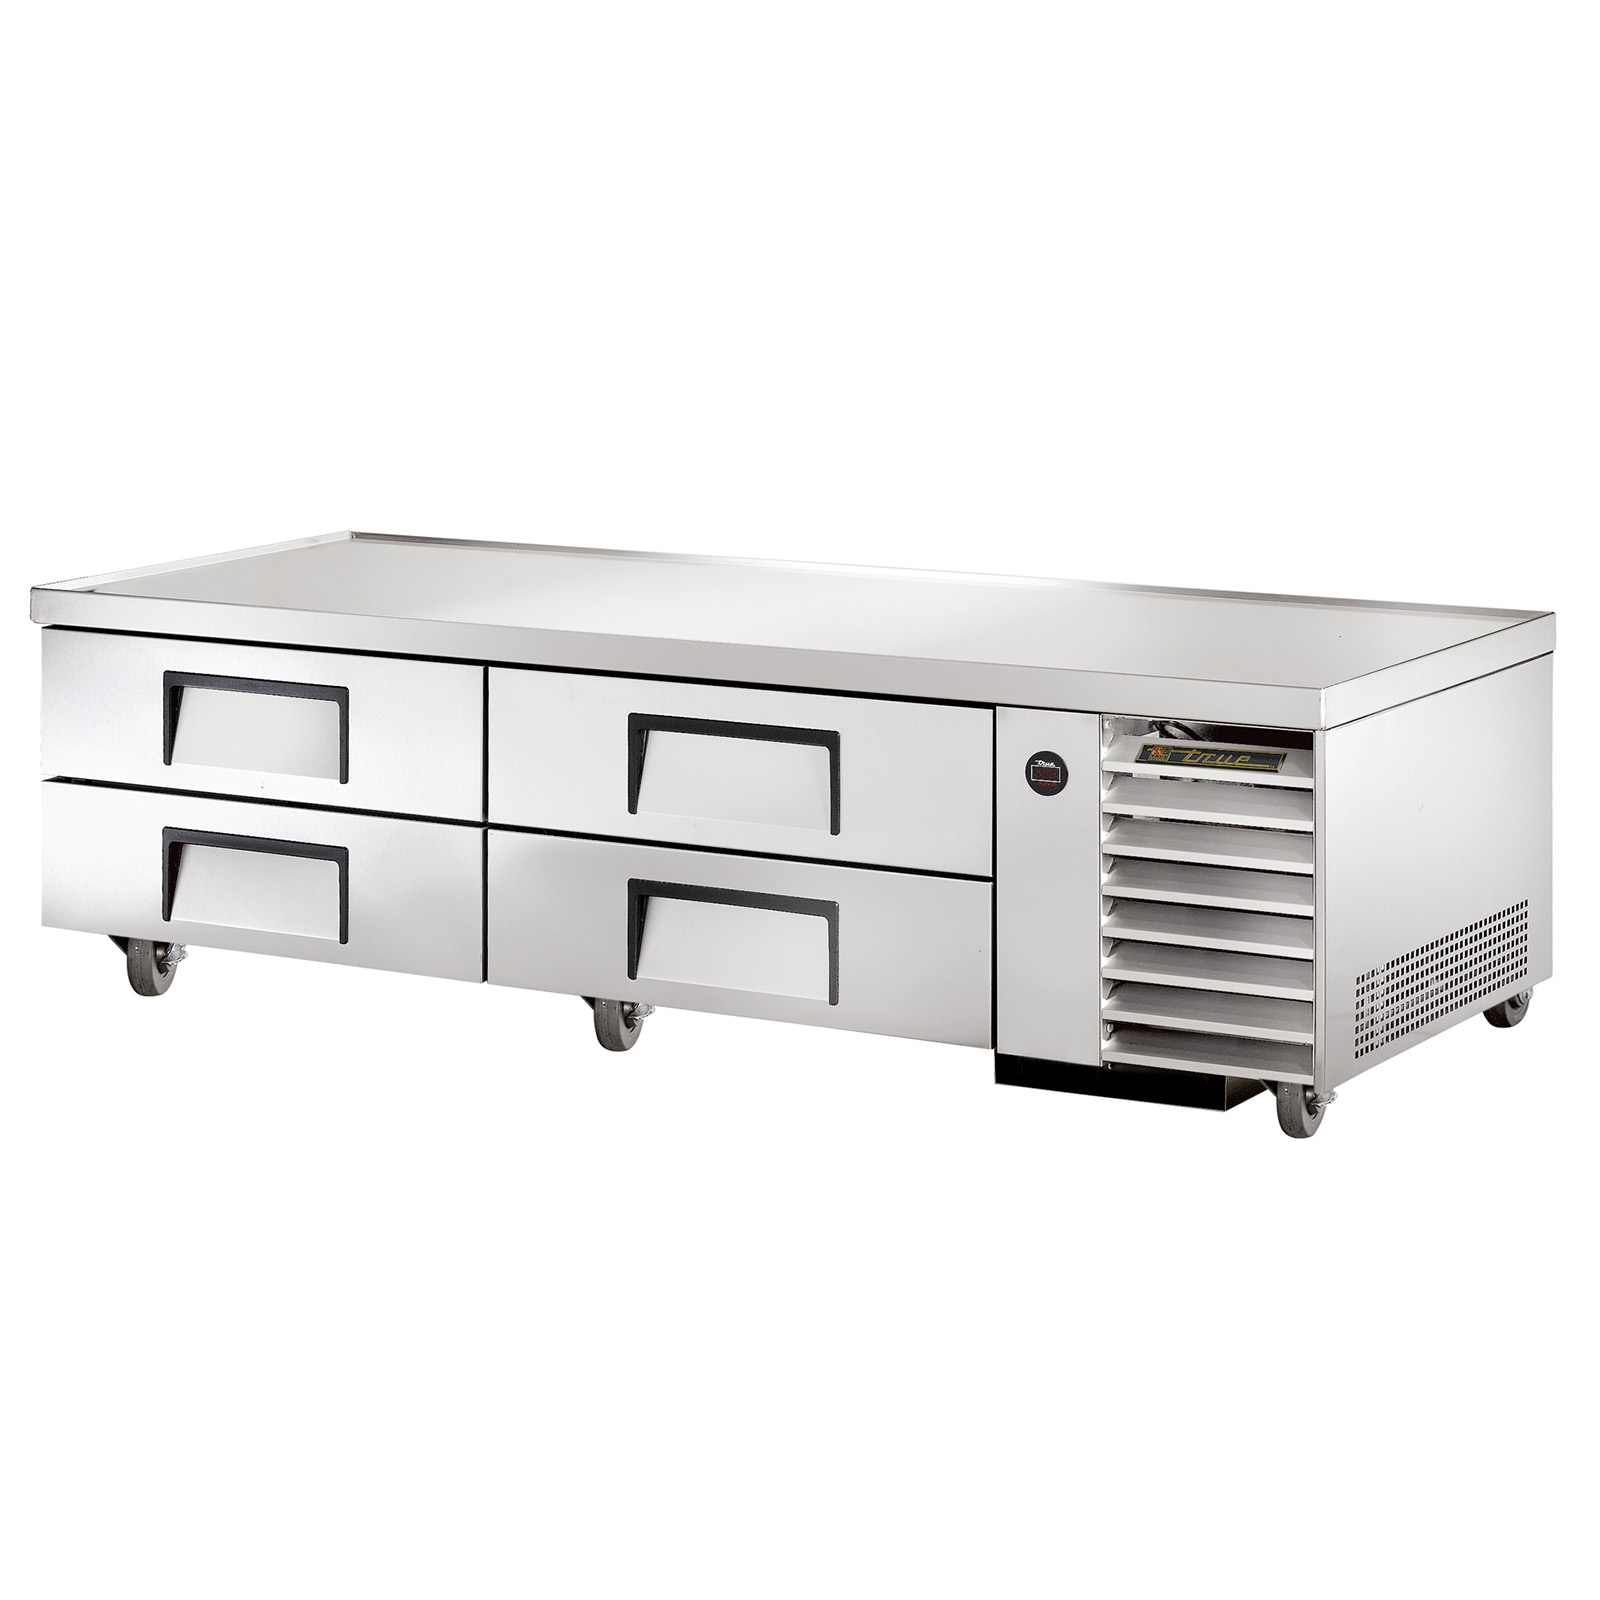 TRCB-79 True - Refrigerated Chef Base 79-1/4